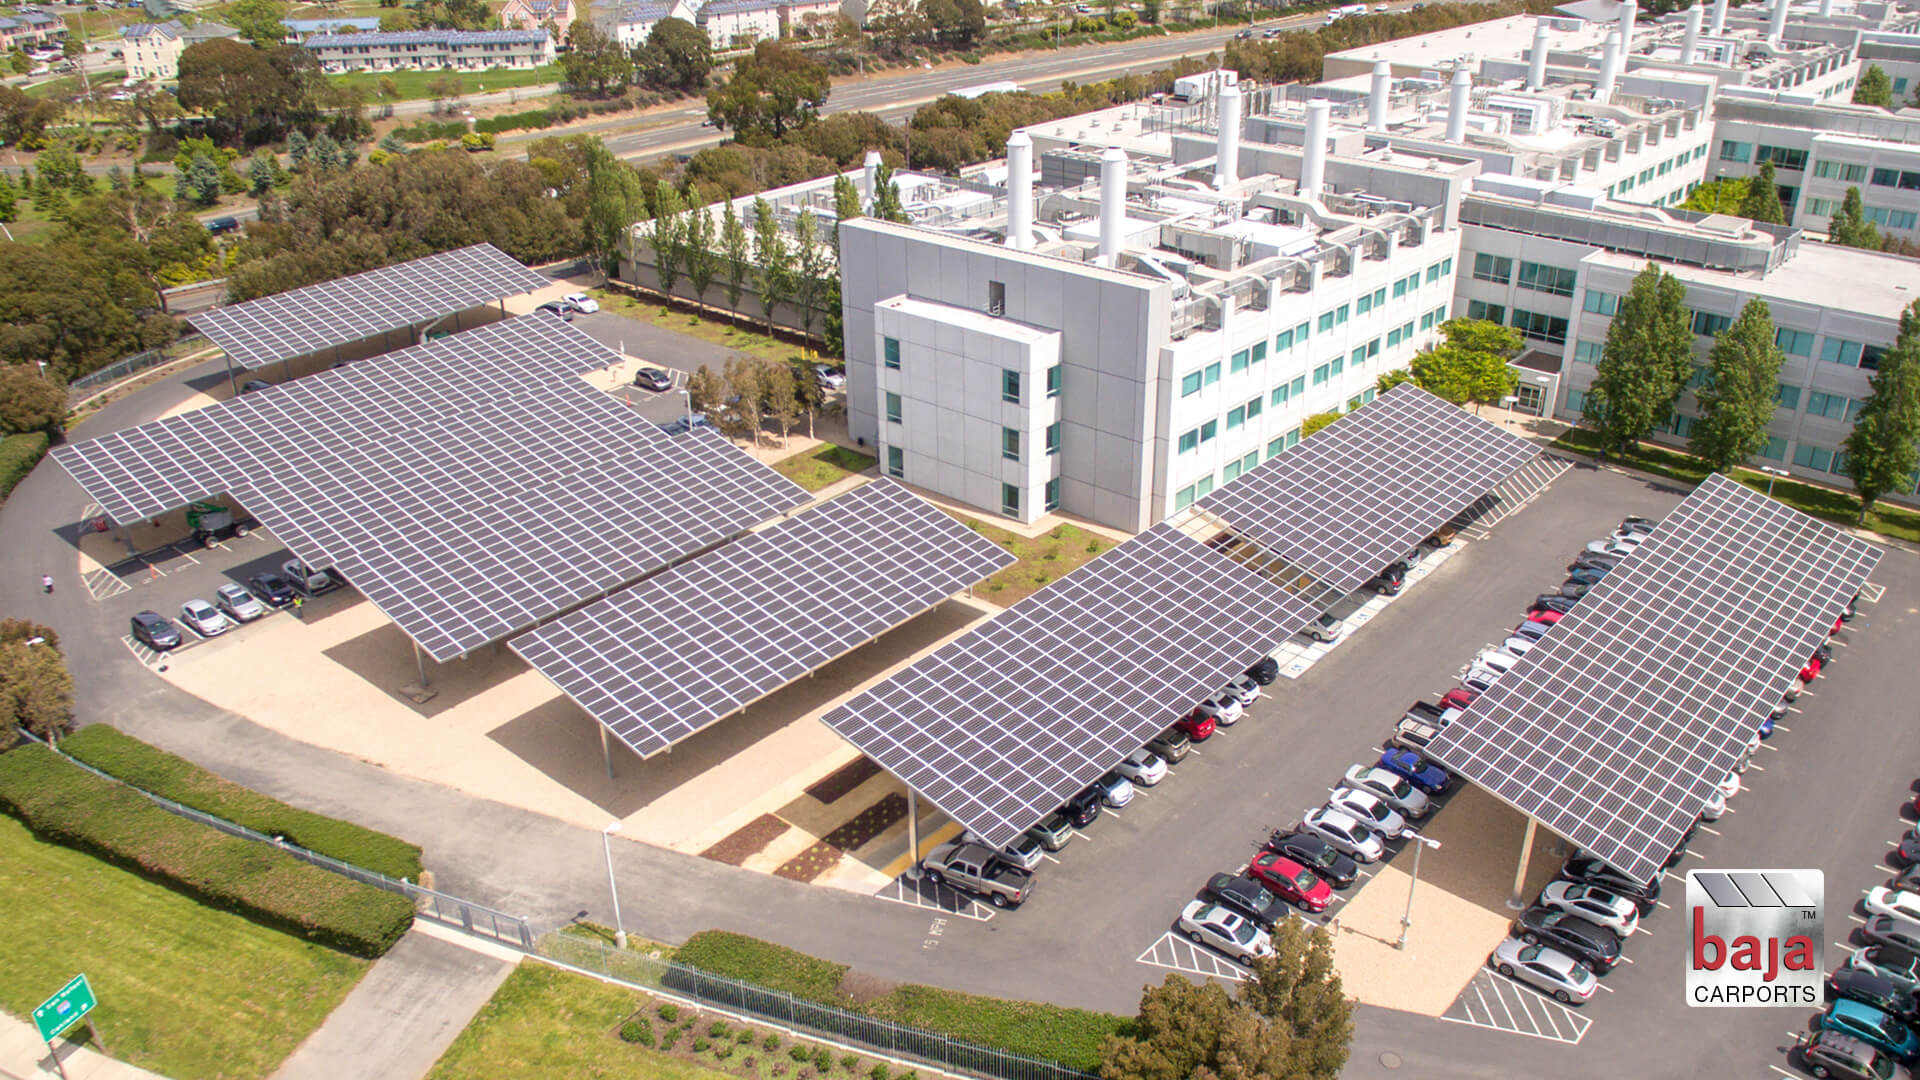 timelapse video installation solar carports at california dept of public health by baja carports